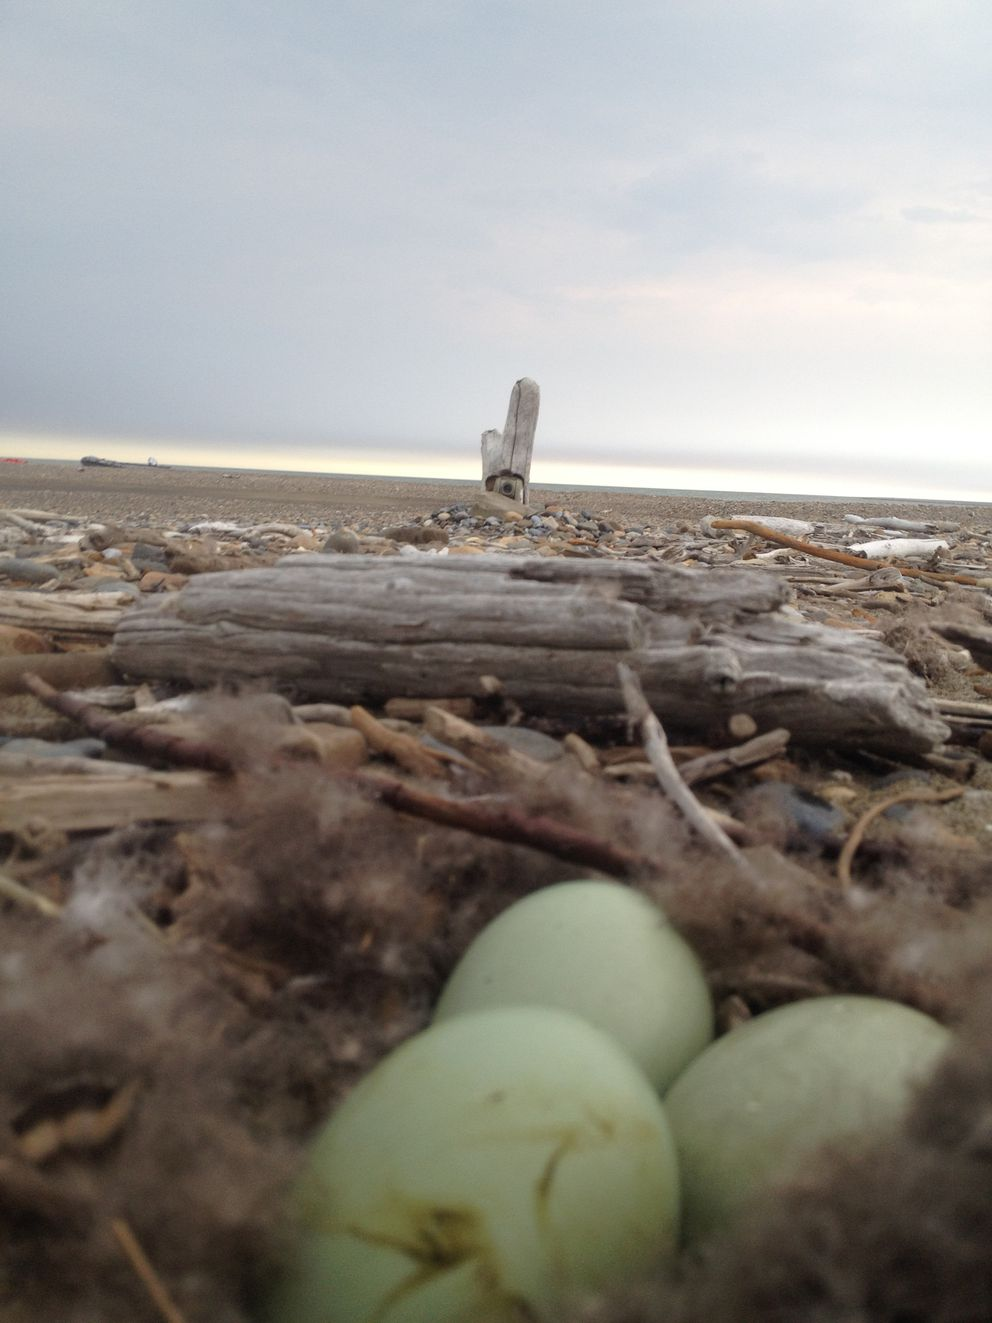 A FWS camera is on an Arctic National Wildlife Refuge barrier island overlooking common eider eggs (Wilhelm Wiese / FWS)